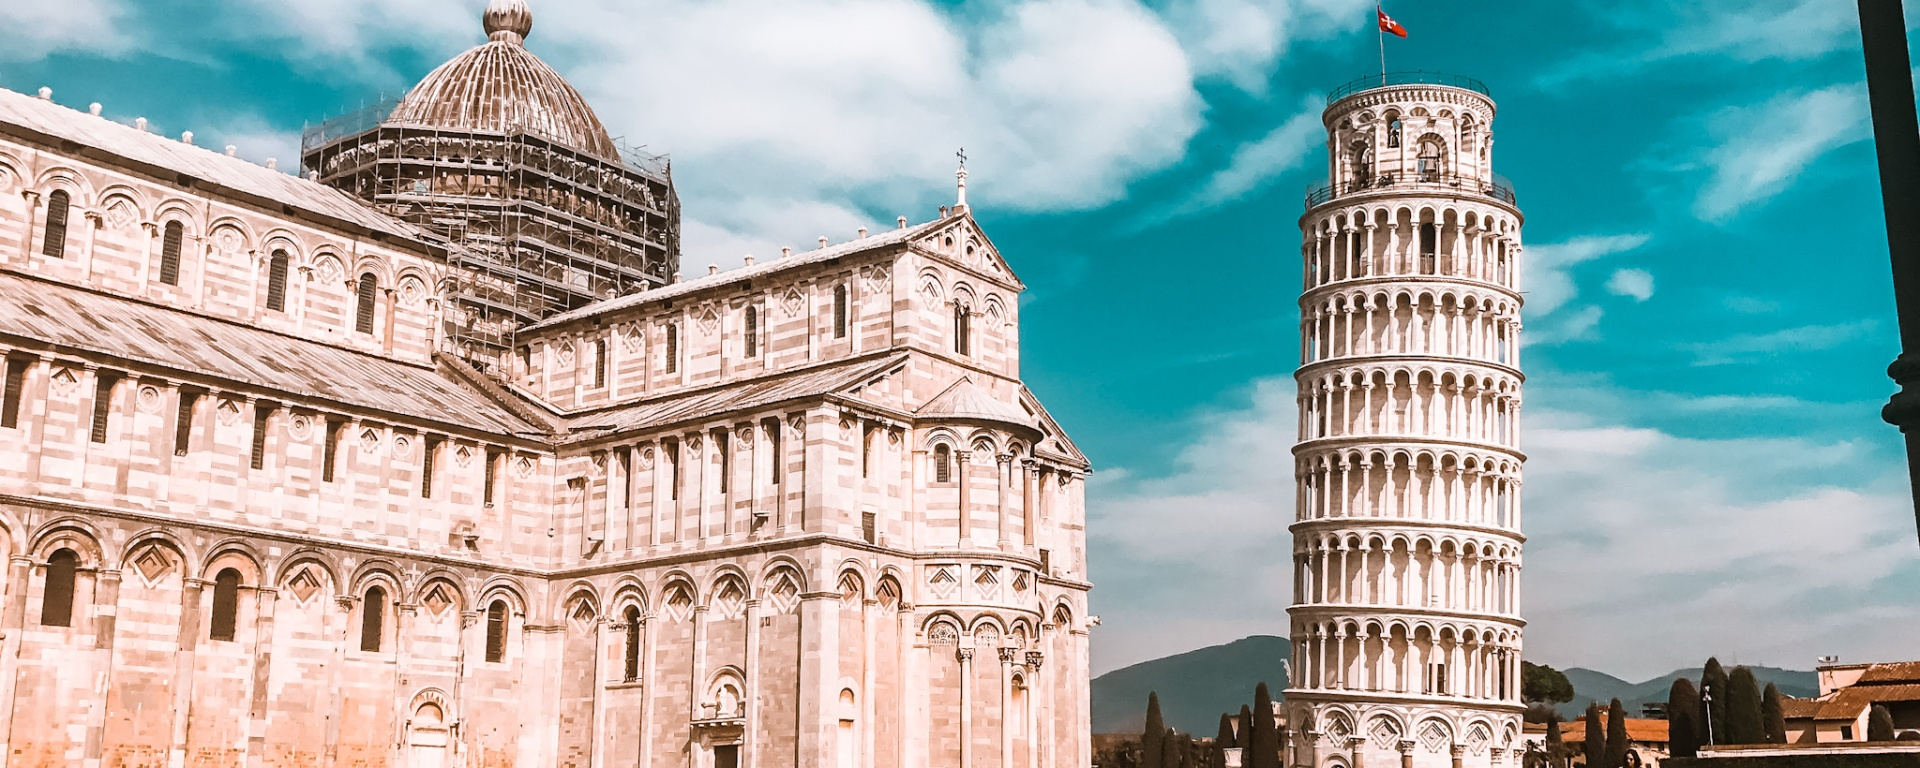 The Leaning Tower of Pisa and the Cathedral of Pisa gather large crowds around it